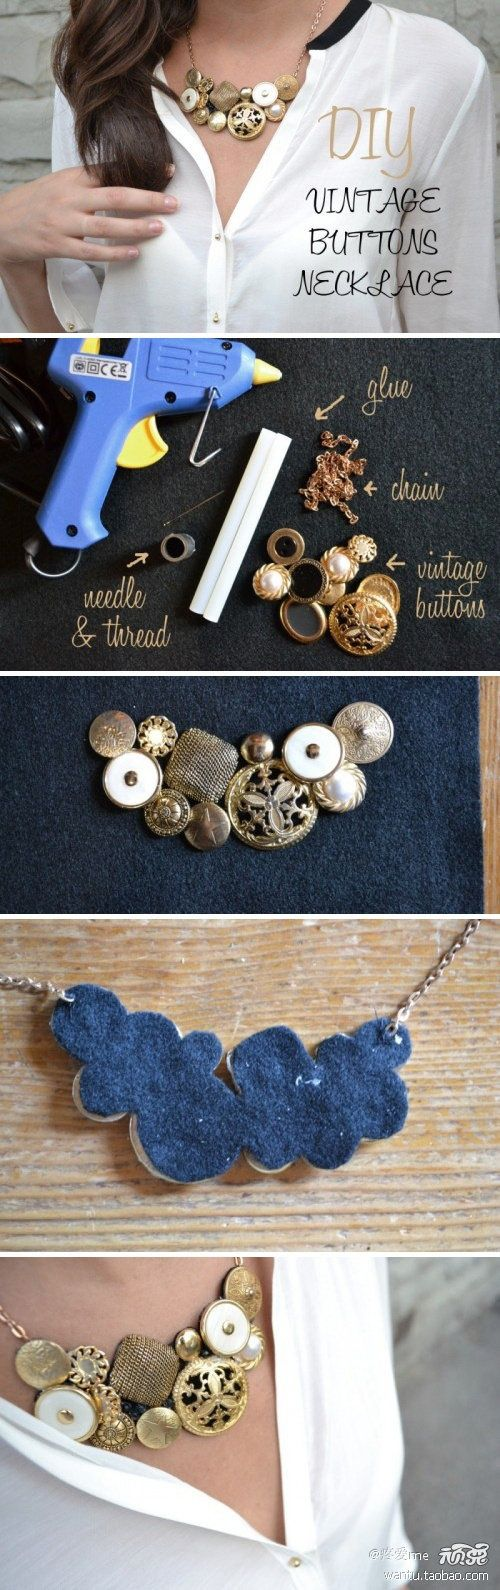 How to create a stunning vintage button necklace.